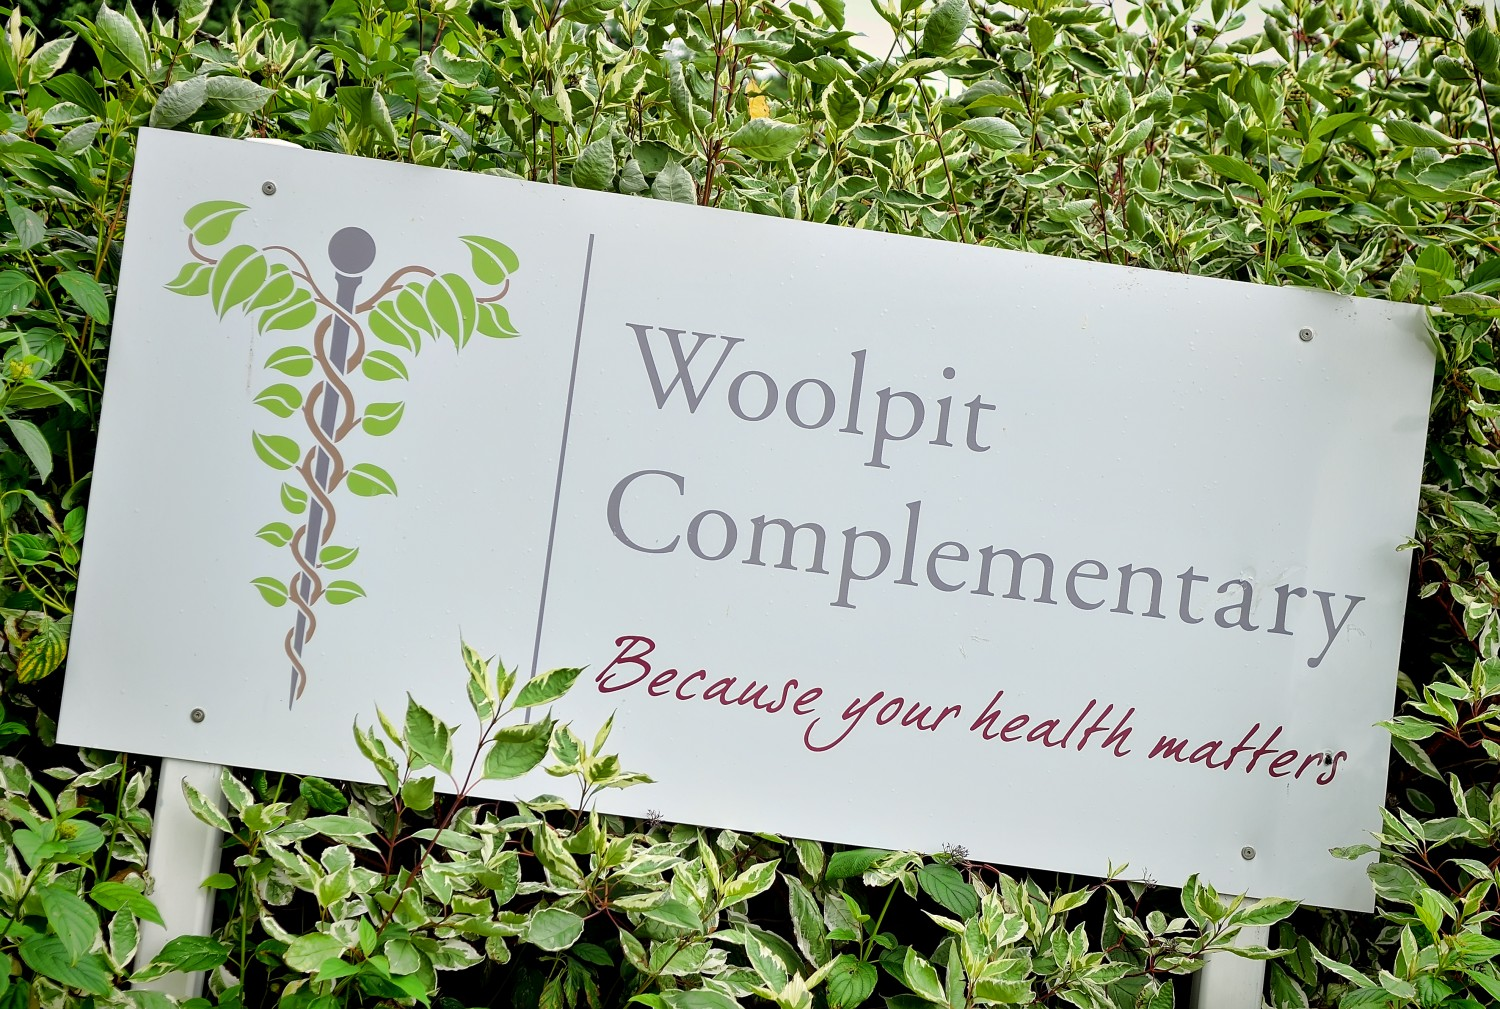 Woolpit-Complementary-Sign-e1452183622624